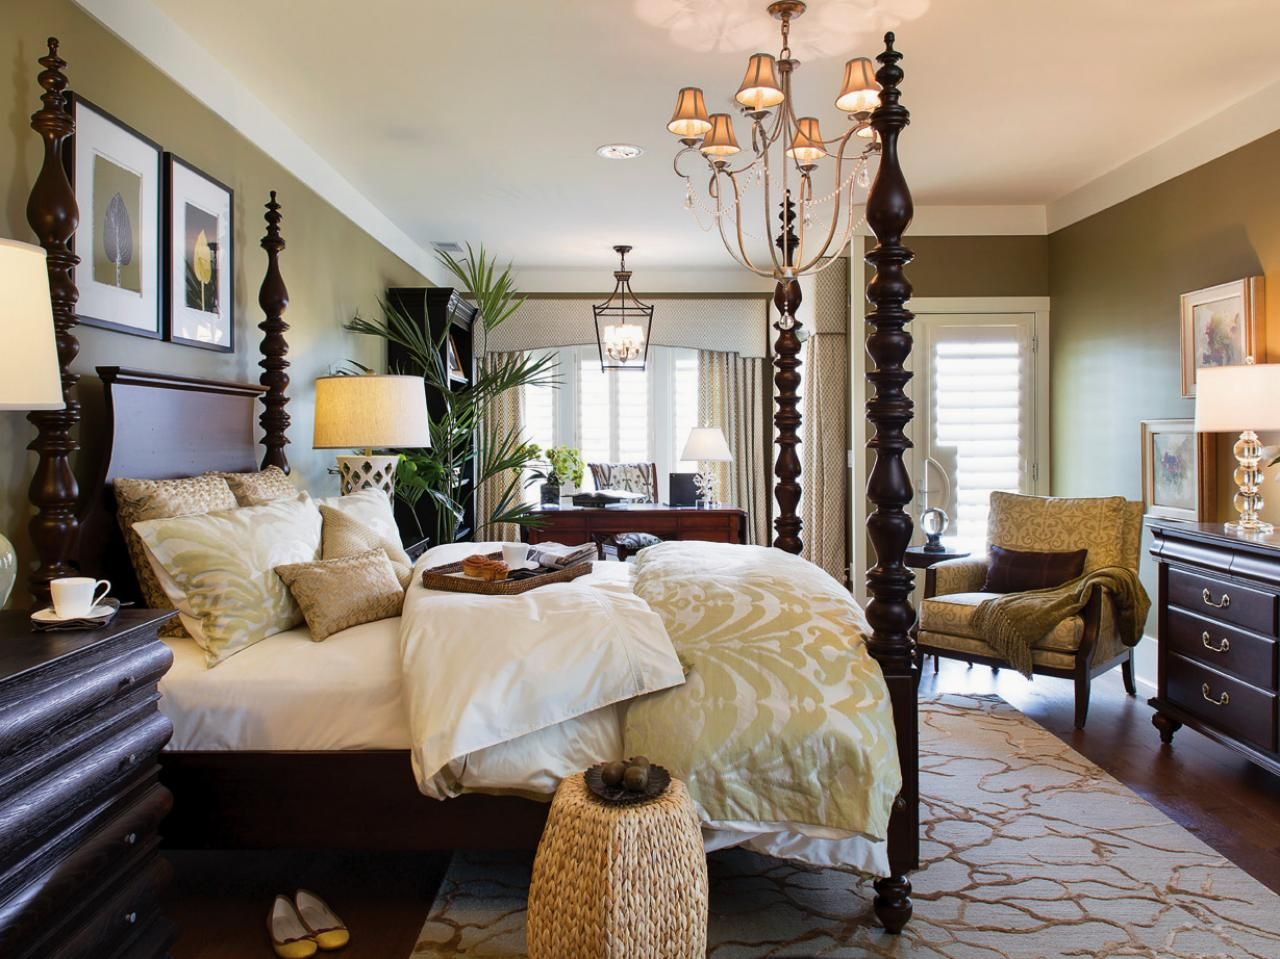 Master Bedroom Trends 2016 rich furnishings, soundproofed flooring, sumptuous textiles and a